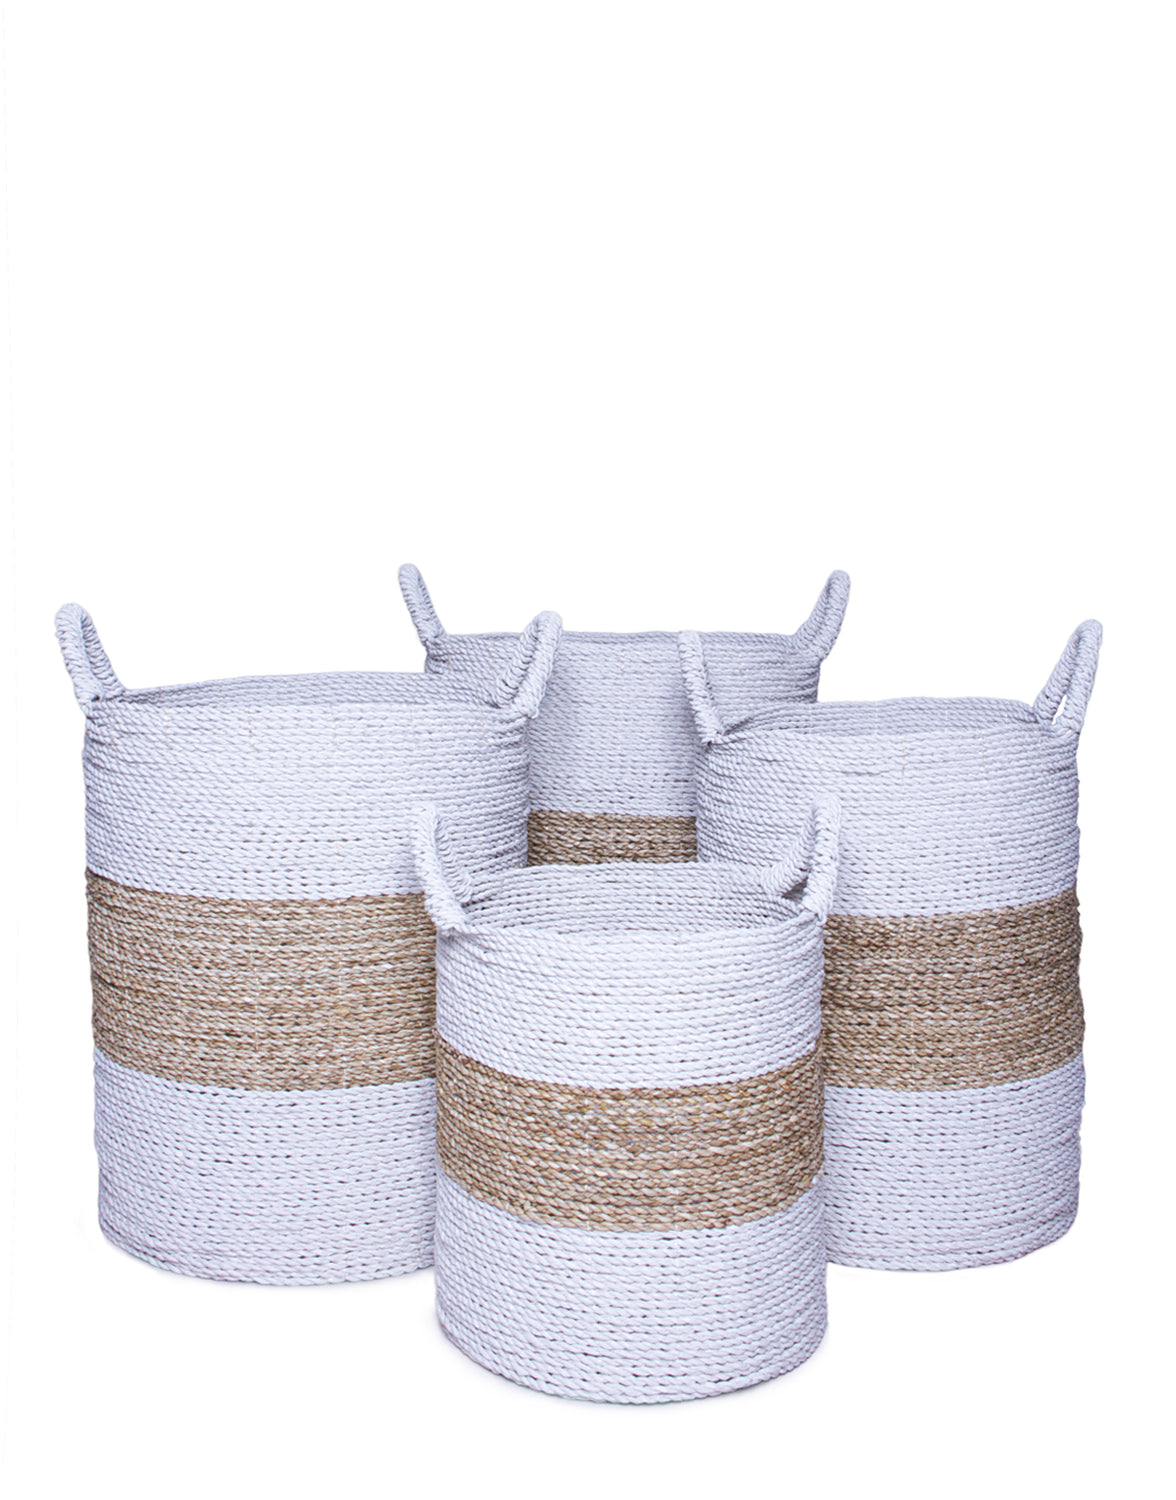 White And Natural Hand Woven Seagrass Baskets